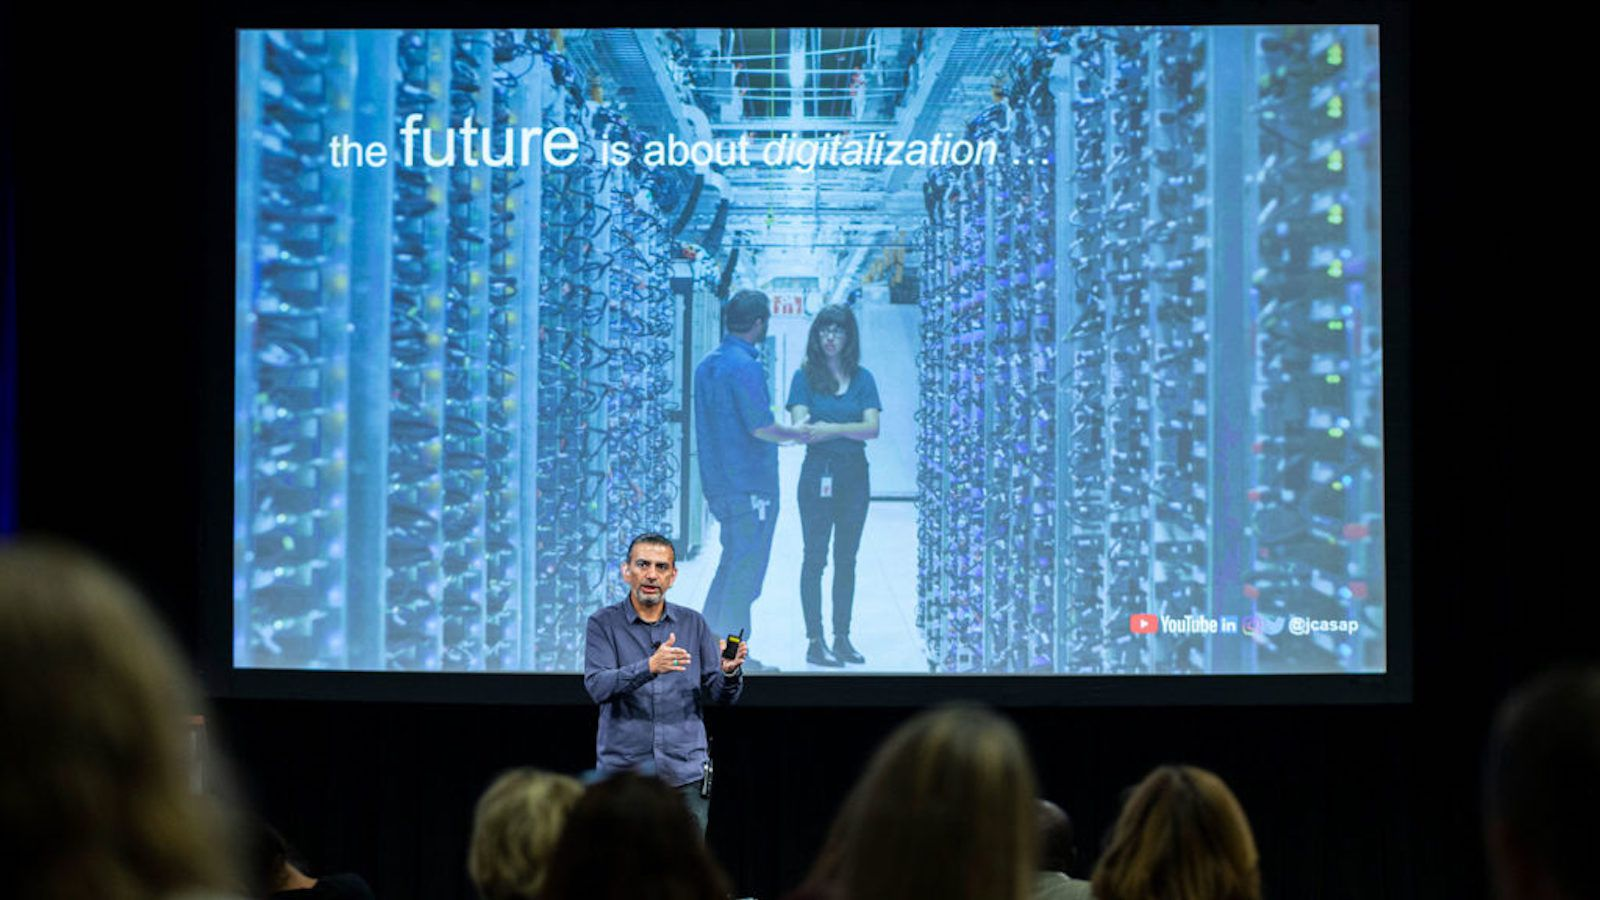 Jaime Casap is Google's education evangelist. He spoke at Capital One's fourth annual Reimagine Communities Summit in Plano in October 2019.